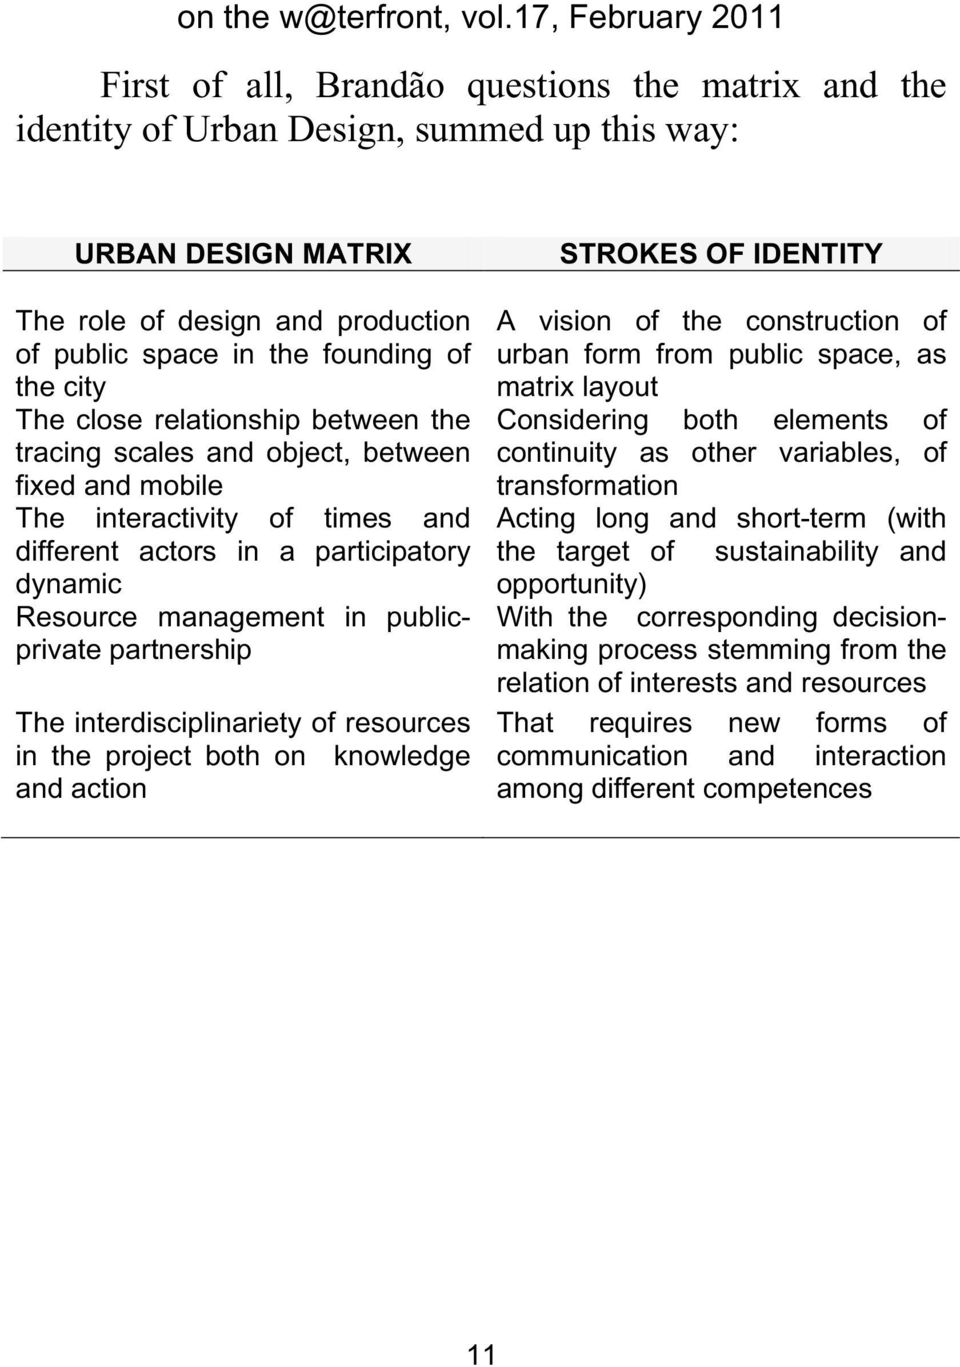 partnership The interdisciplinariety of resources in the project both on knowledge and action STROKES OF IDENTITY A vision of the construction of urban form from public space, as matrix layout